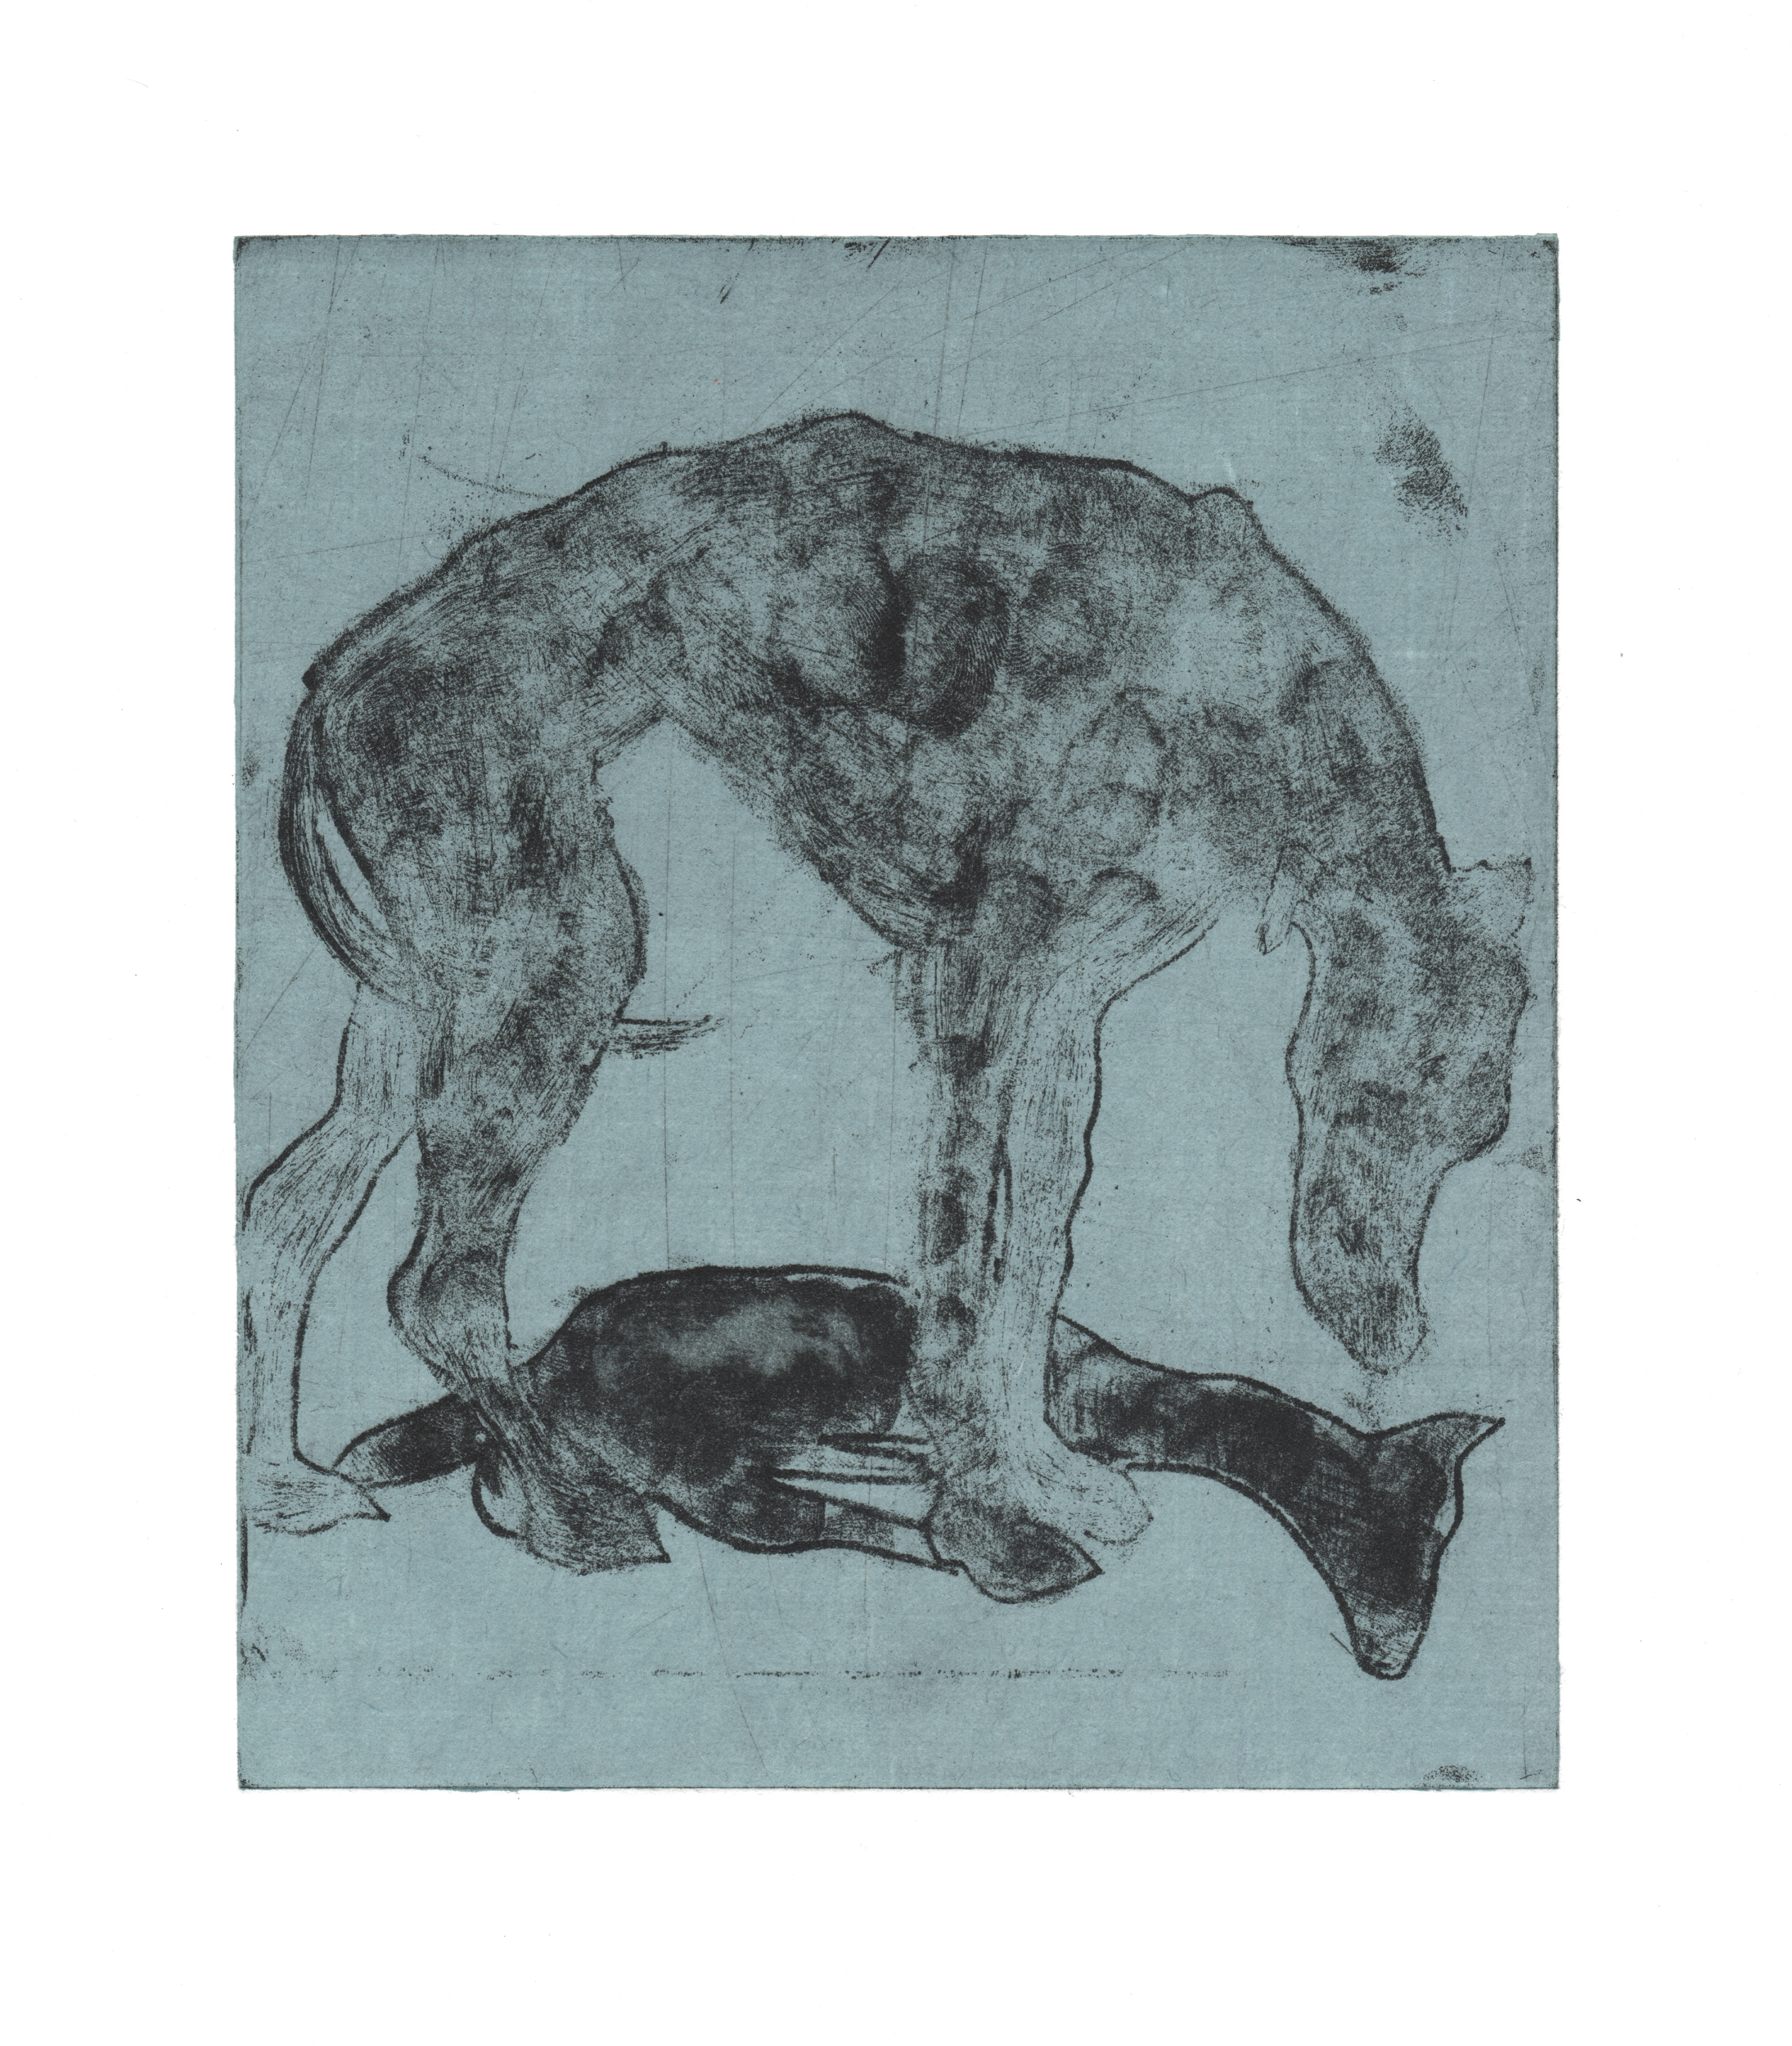 Zach Cramer, Another Fool's Dog, intaglio